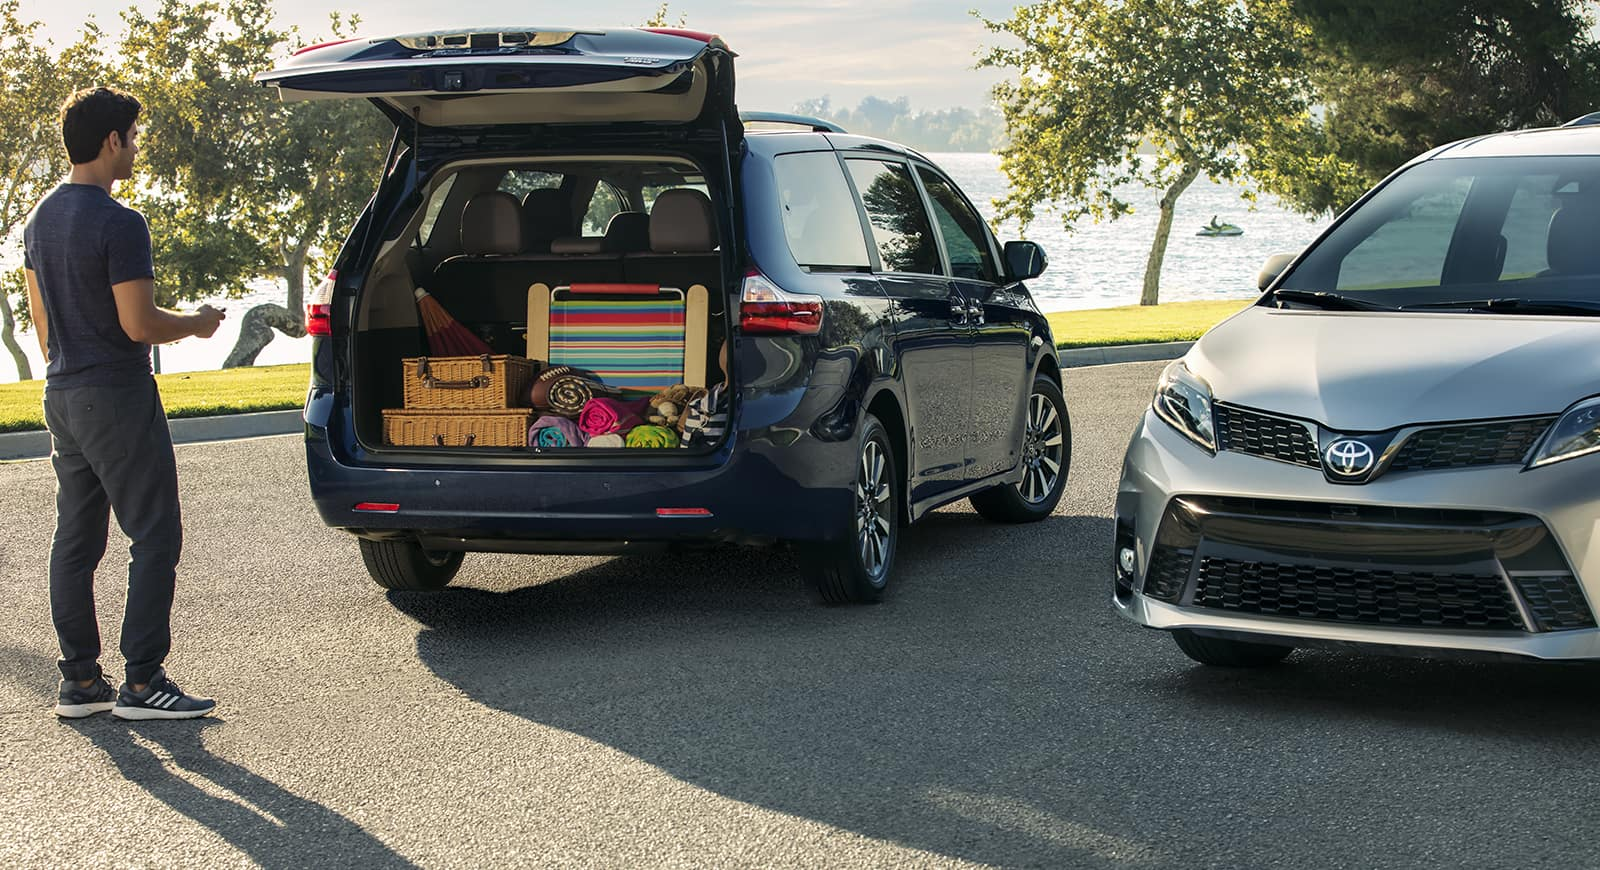 2 Toyota Sienna Minivans with trunk open storing items